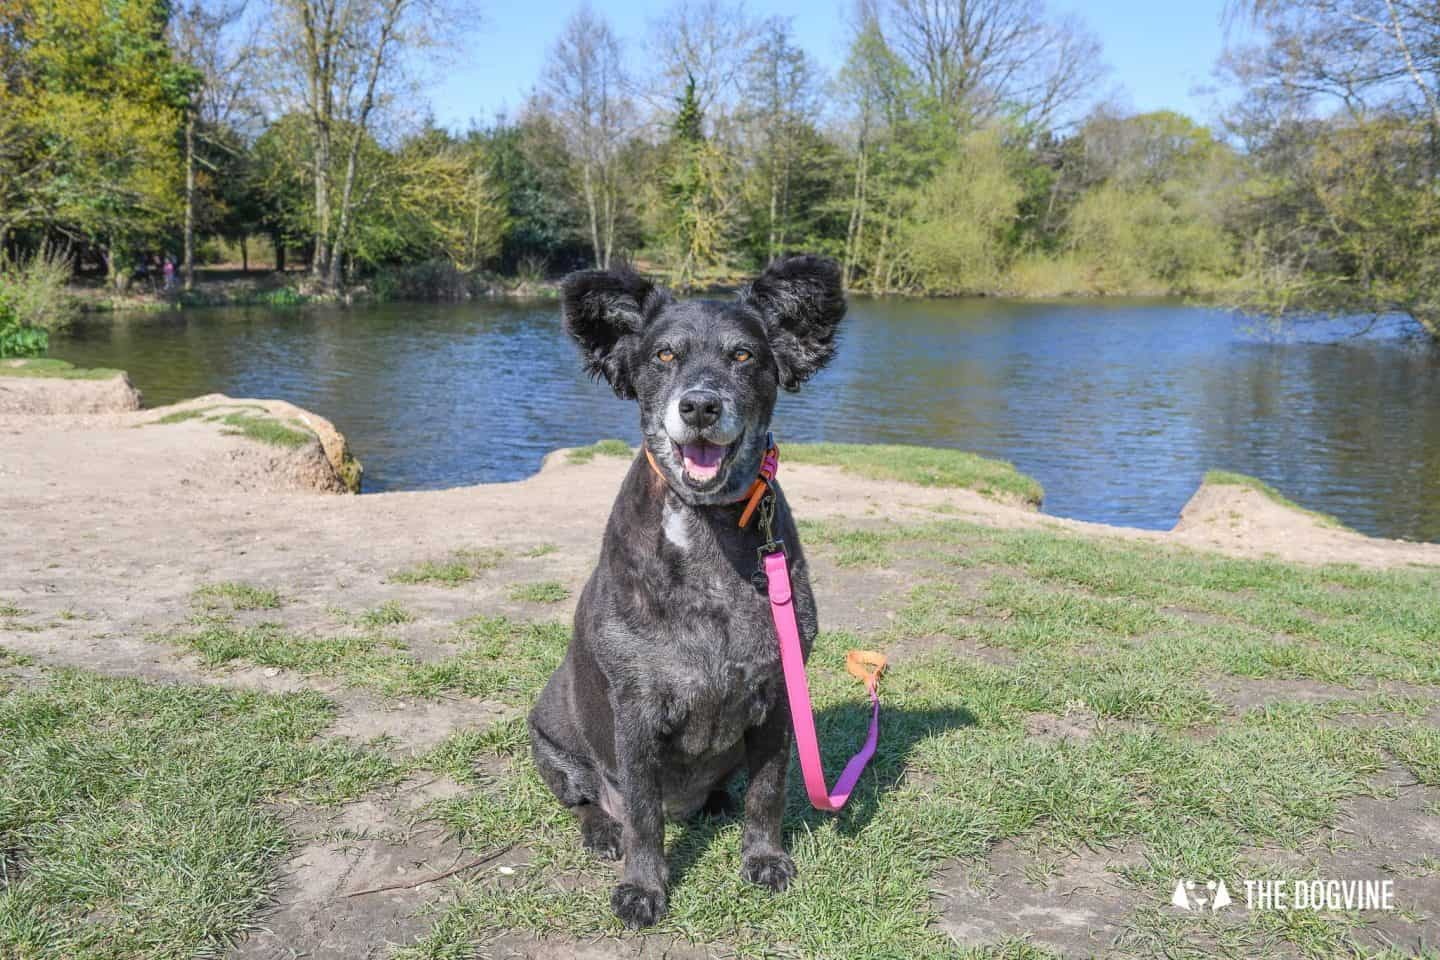 Dog-Friendly Osterley Park and House - Visiting With Your Dog 6